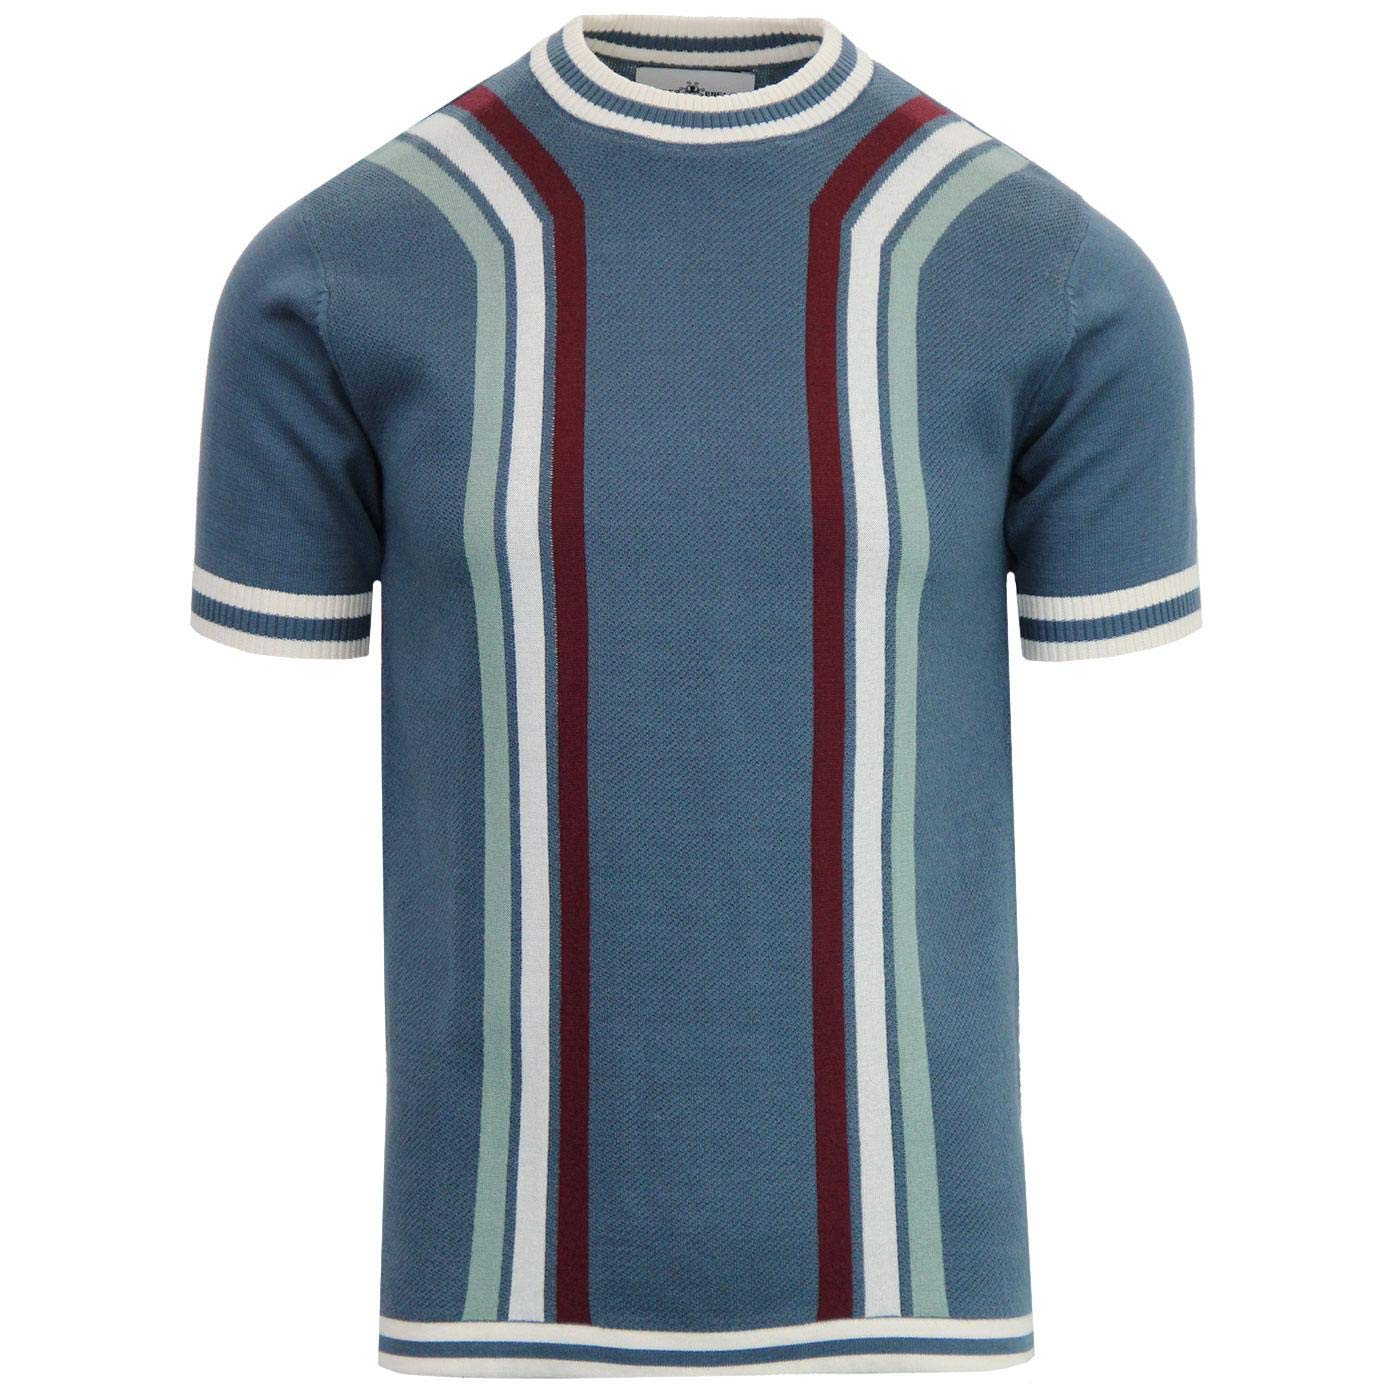 1960s – 70s Mens Shirts- Disco Shirts, Hippie Shirts Madcap England Modernista Mens Retro 60s 70s Waffle Knit Short Sleeve Knitted Striped T-Shirt Jumper £29.99 AT vintagedancer.com